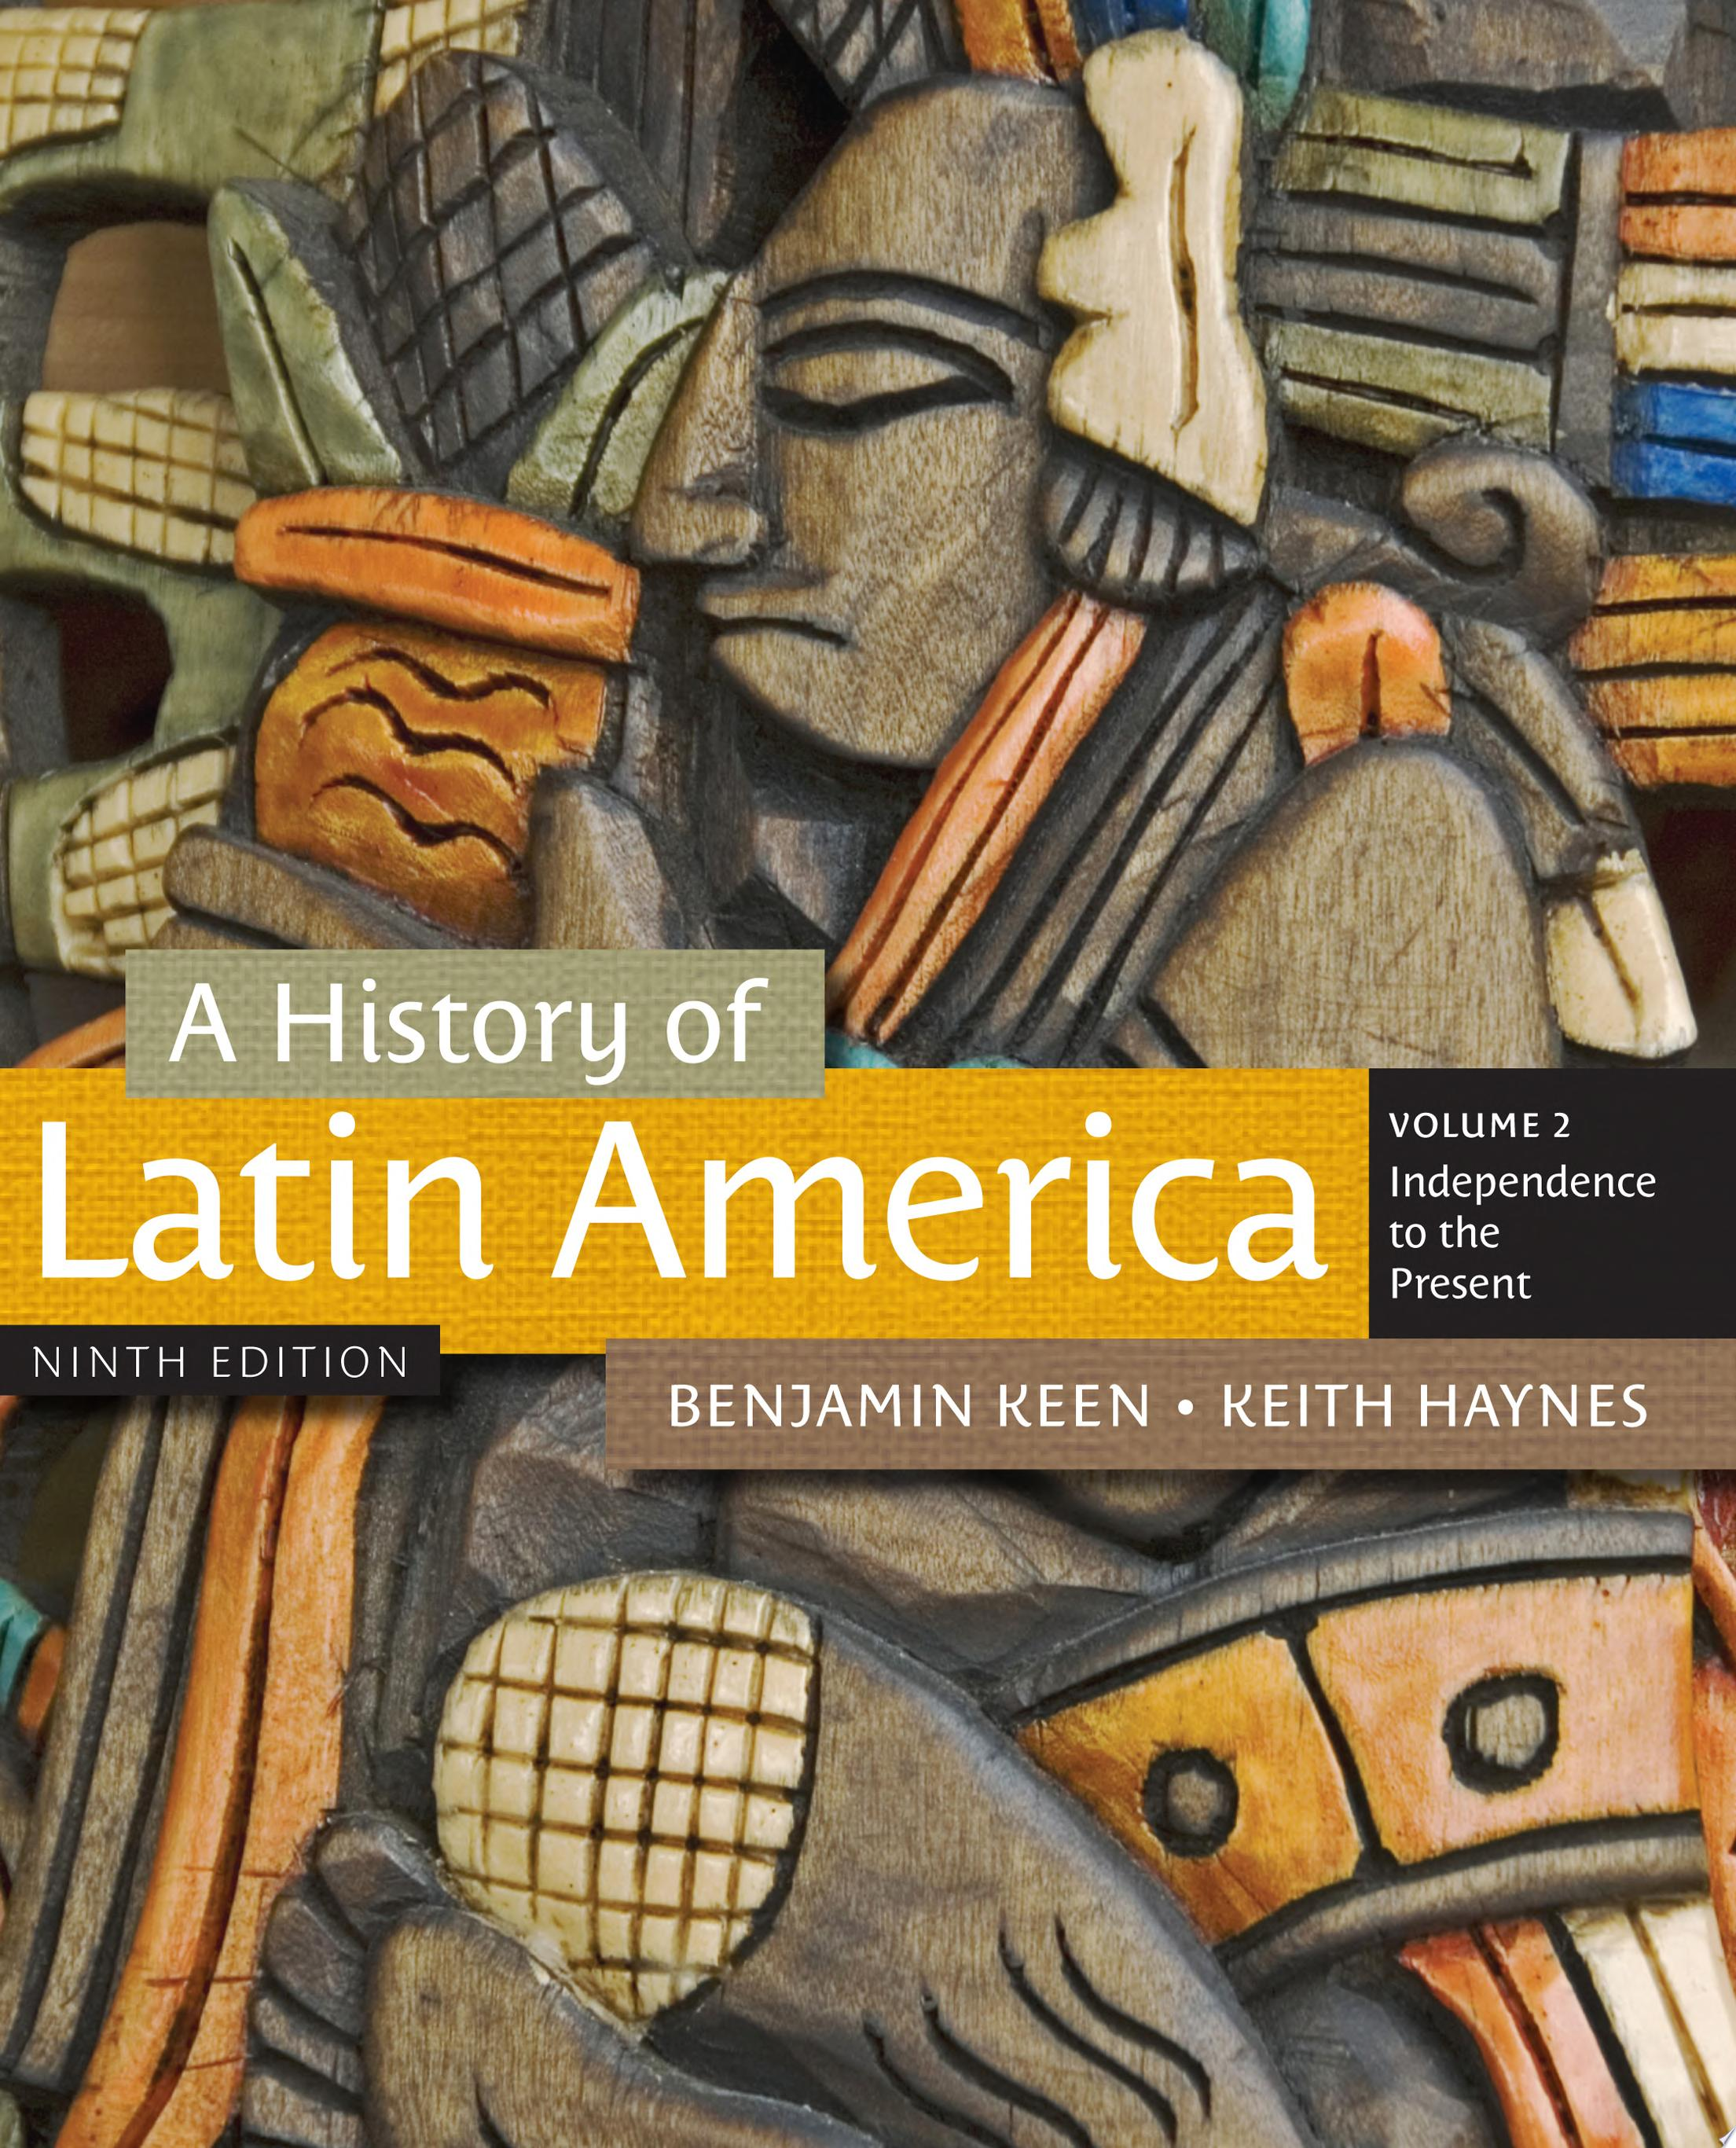 A History of Latin America